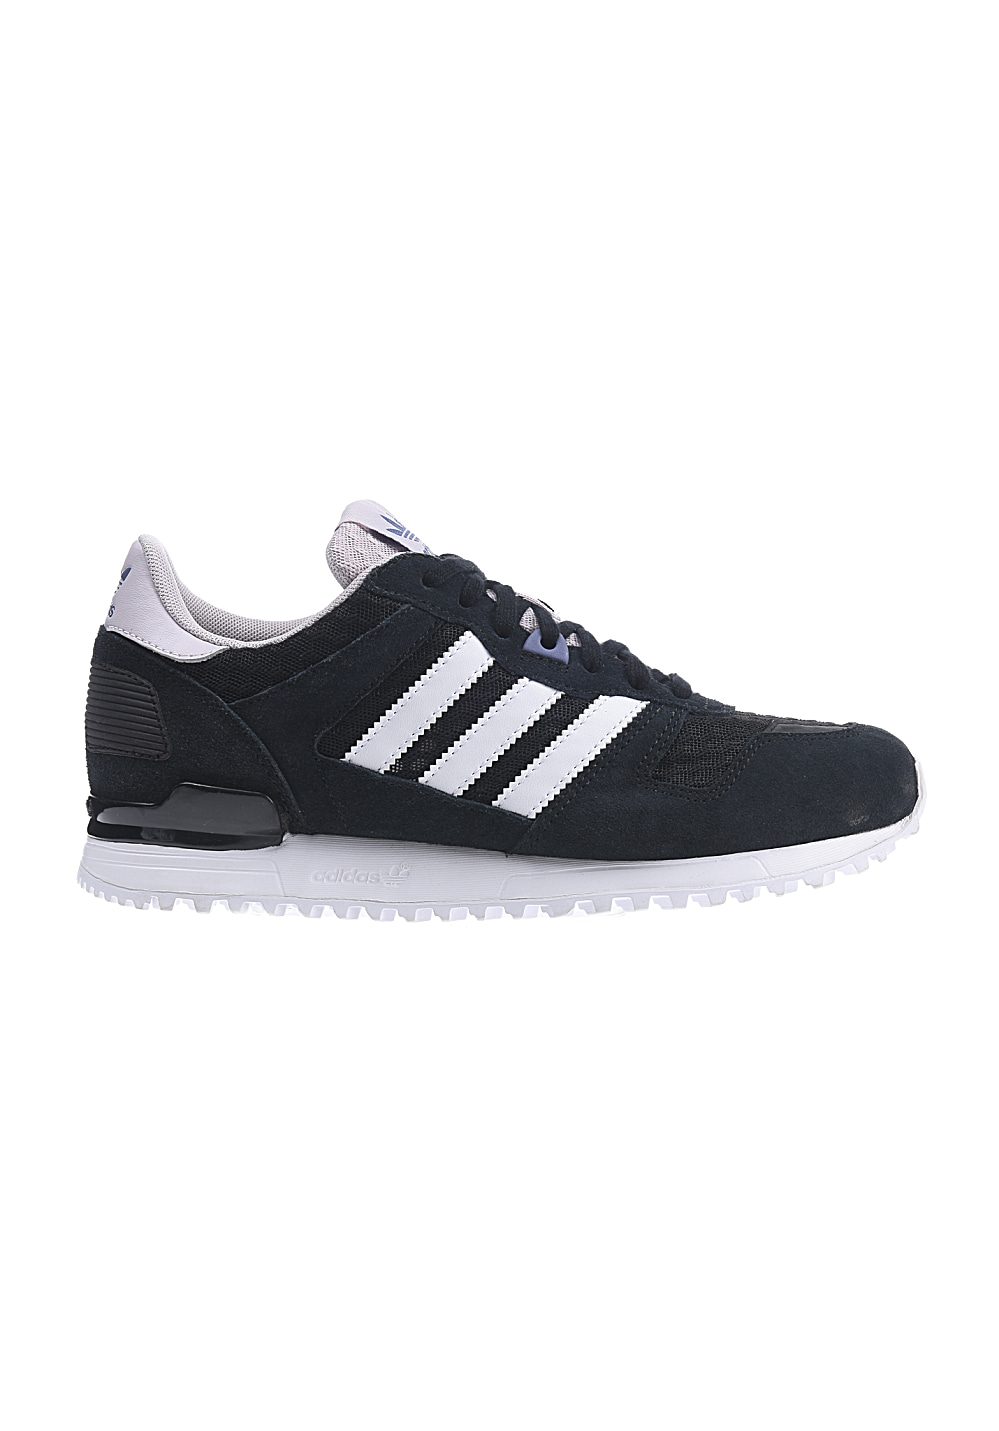 20c445d037bd ADIDAS ORIGINALS ZX 700 - Sneakers for Women - Black - Planet Sports